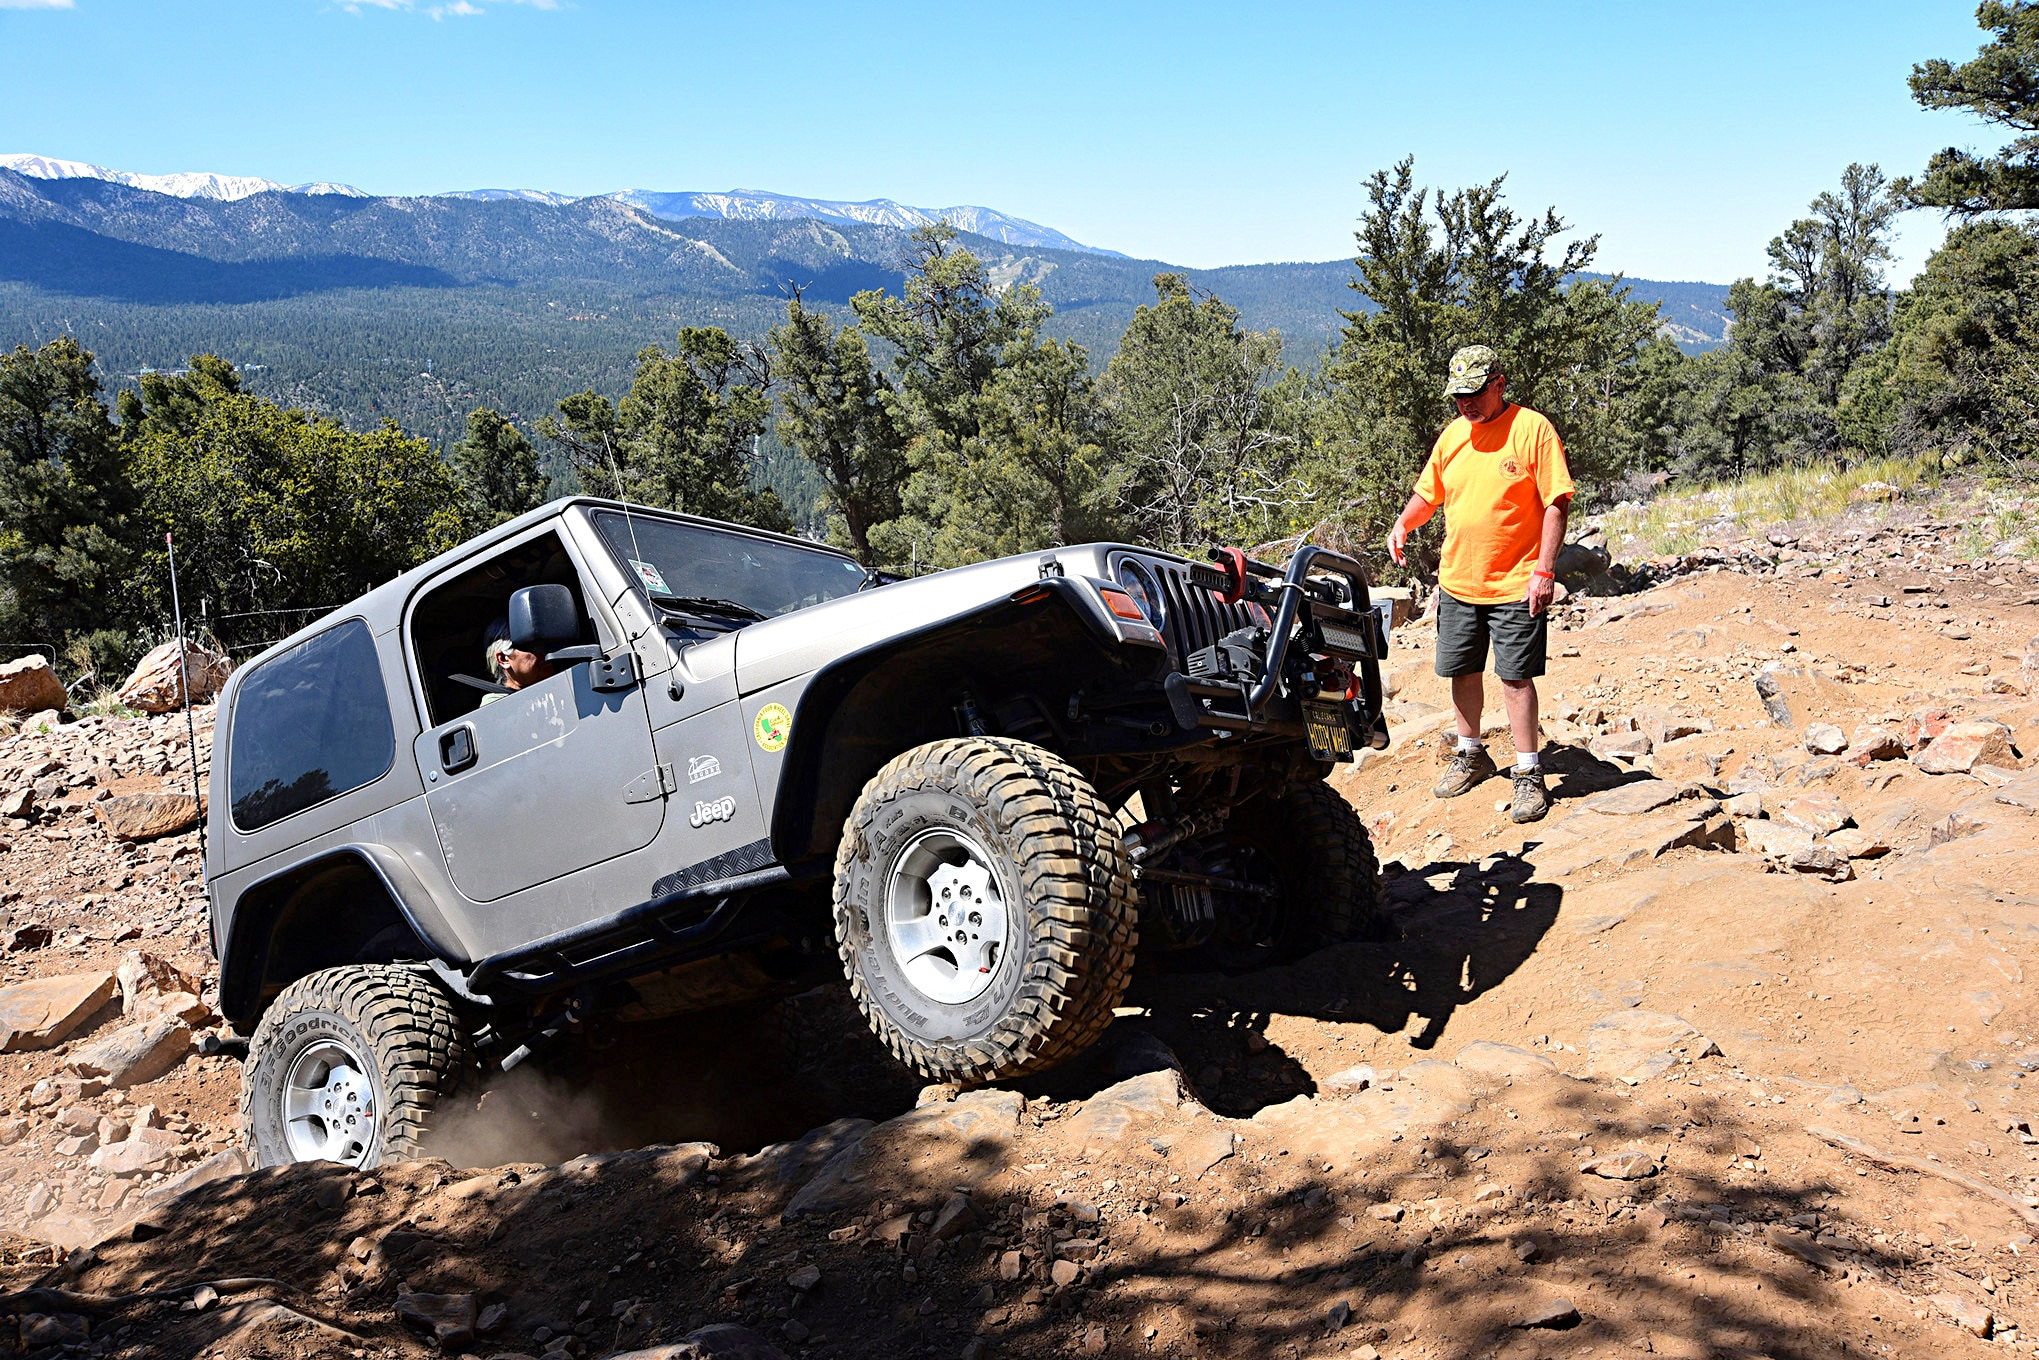 036 jeep event big bear forest fest 2019 inland empire